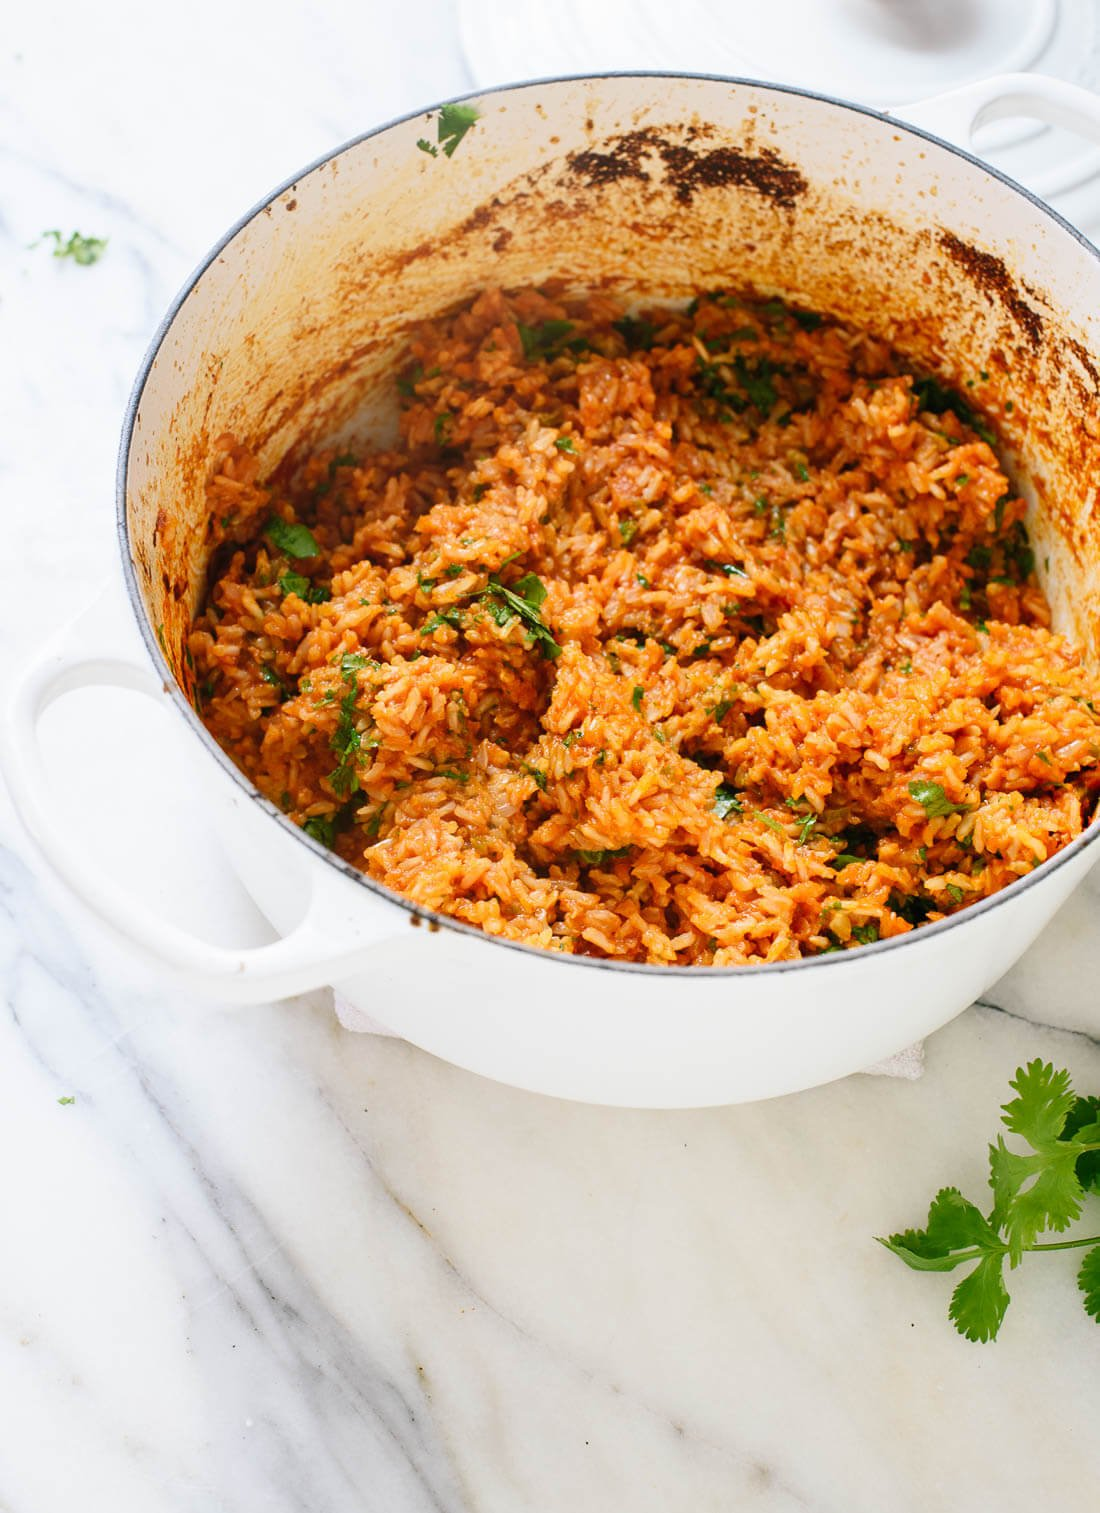 Delicious Spanish brown rice recipe - it's easy to make, just bake it all in the oven! cookieandkate.com